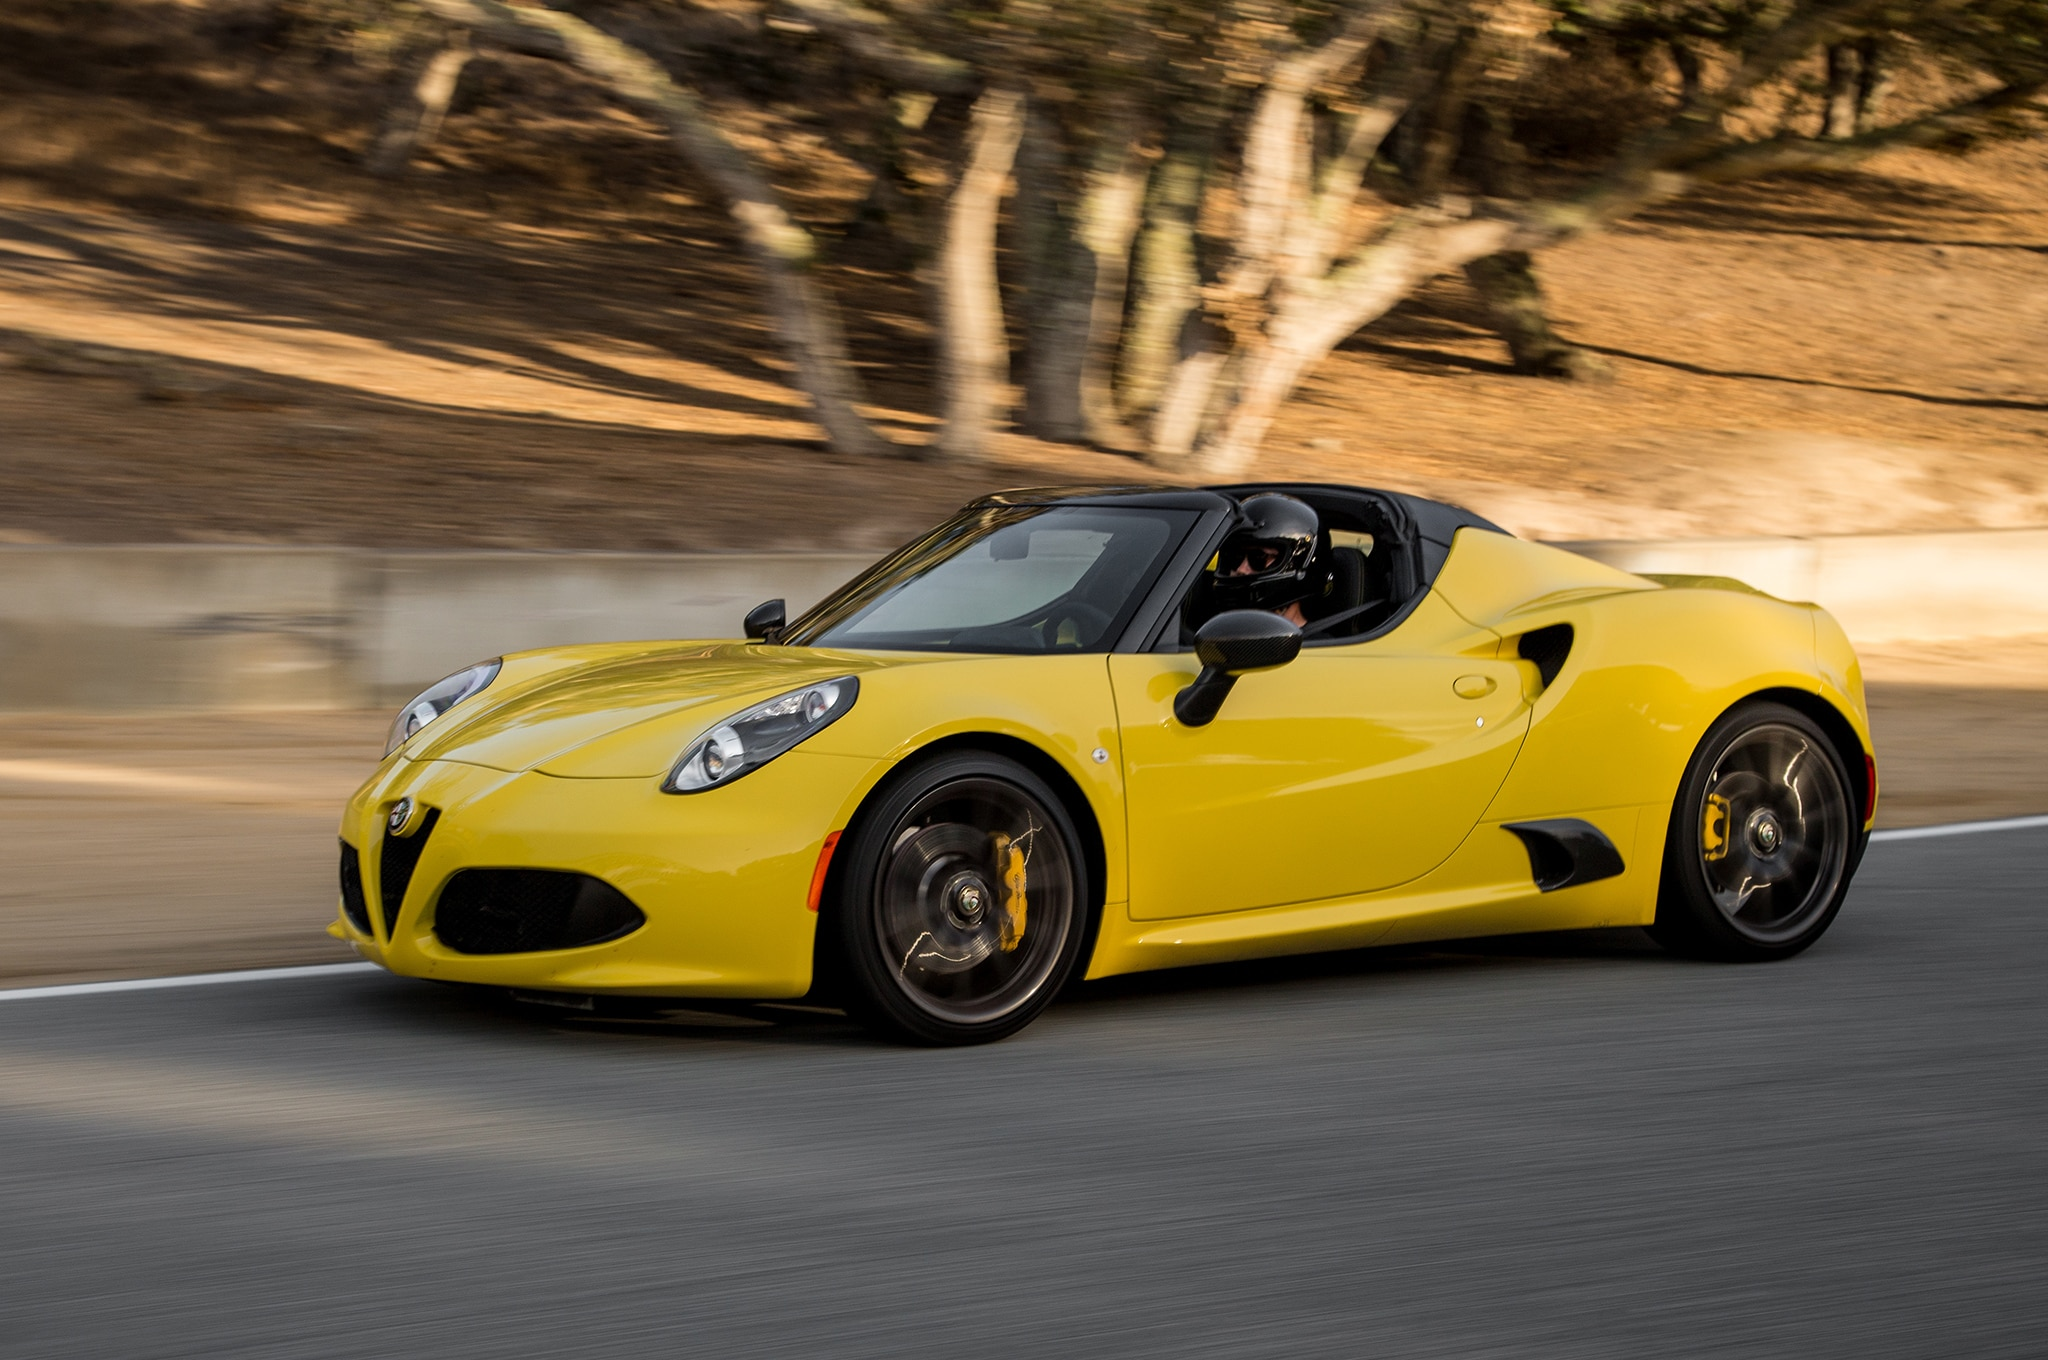 2015 alfa romeo 4c spider lapping laguna. Black Bedroom Furniture Sets. Home Design Ideas